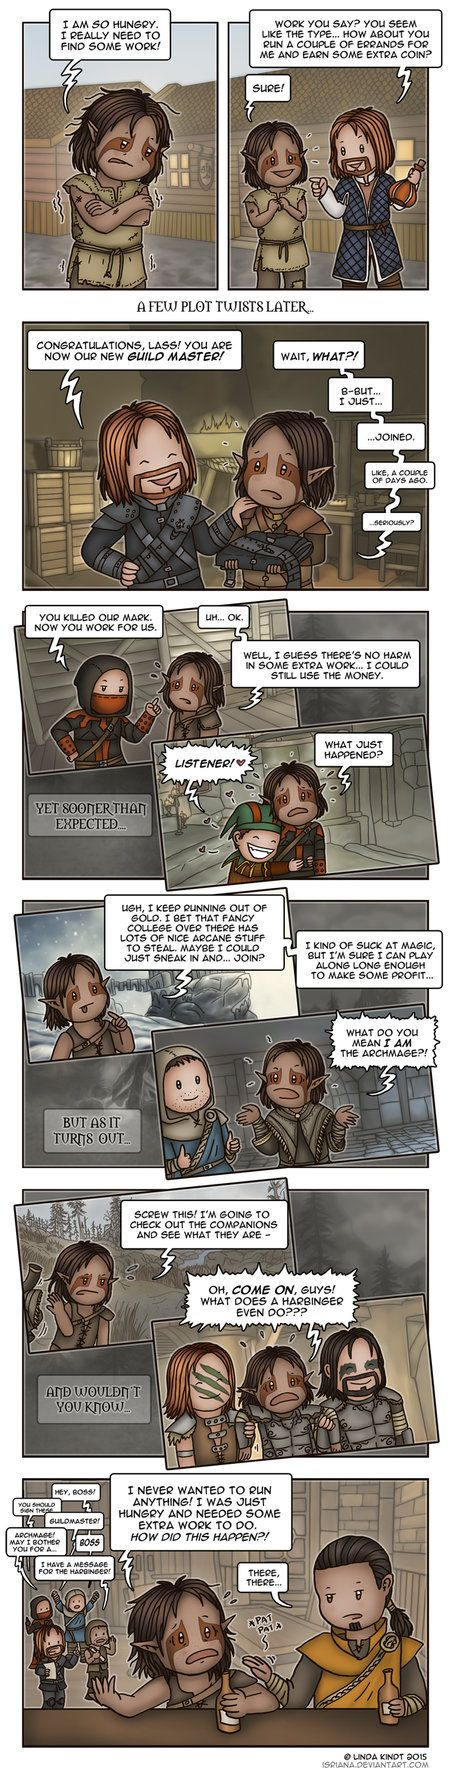 Skyrim: Reluctant Leader by Isriana on DeviantArt